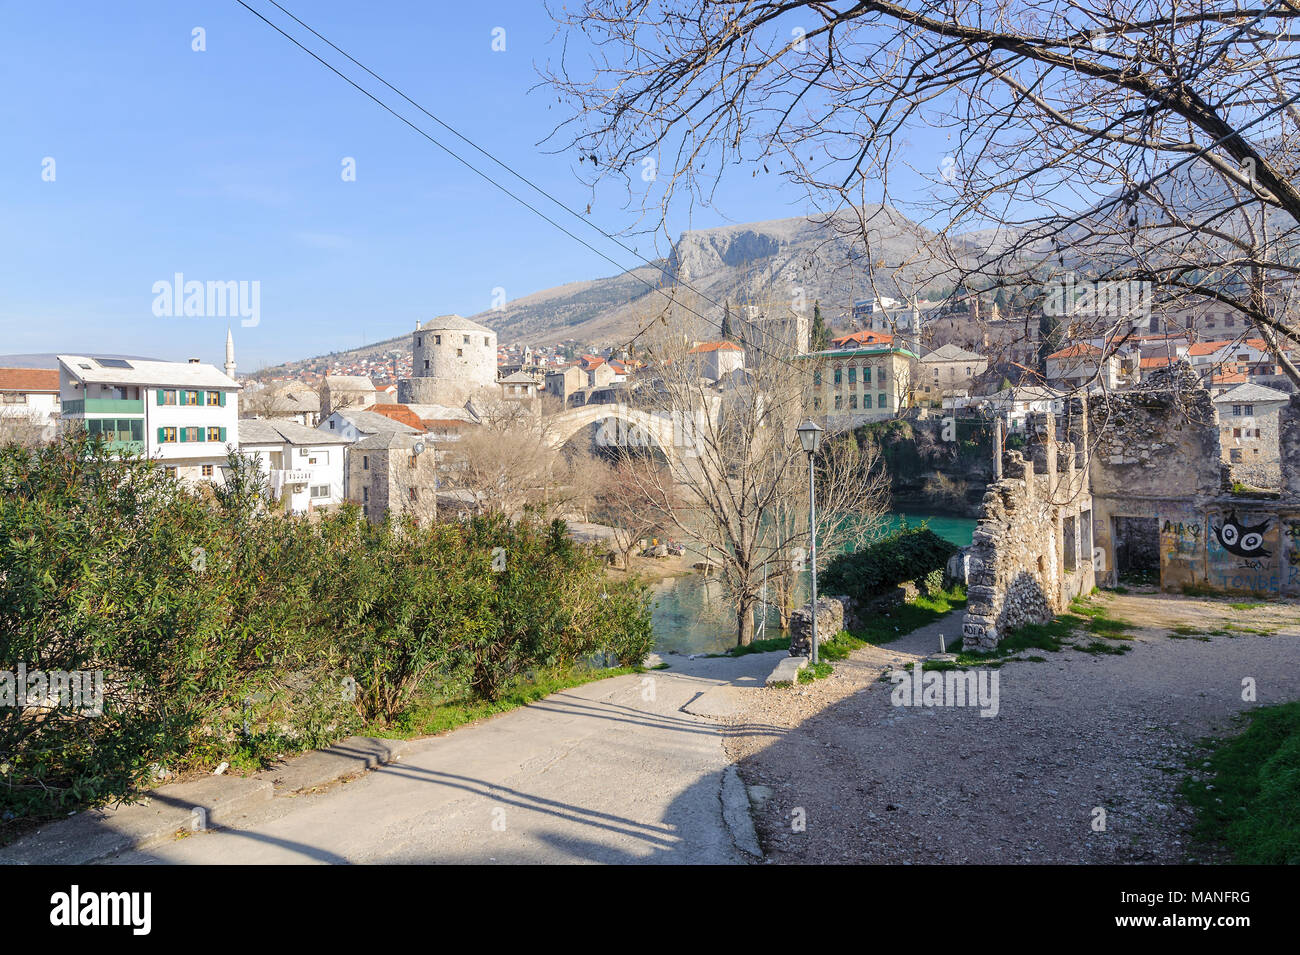 MOSTAR, BOSNIA - JAN 26, 2018: Stari Most (Old Bridge) is a rebuilt 16th-century Ottoman bridge in the city of Mostar in Bosnia that crosses the river Neretva and connects the two parts of the city. - Stock Image